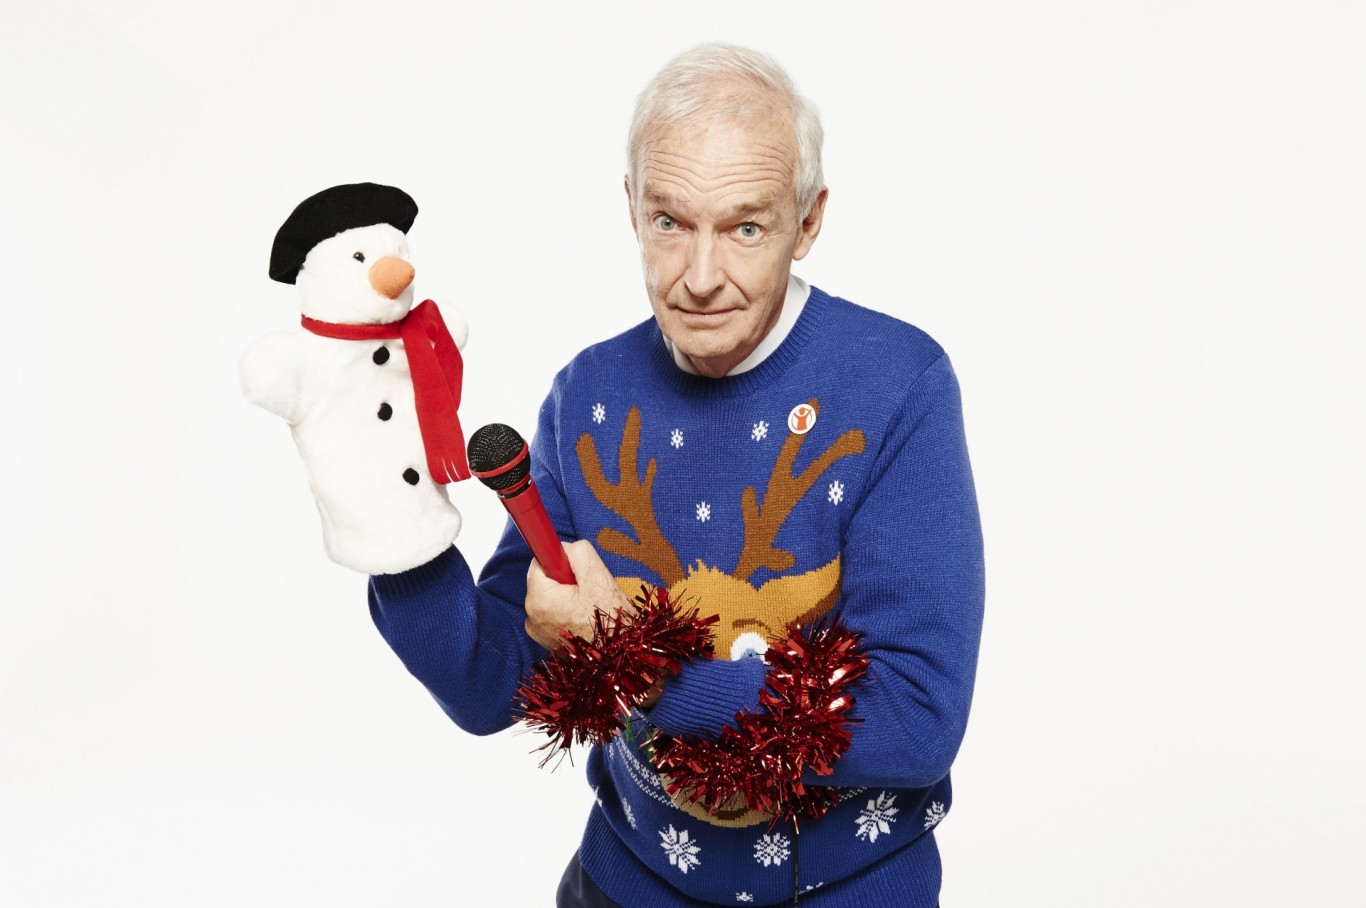 Jumpers to promote Save the Children's Christmas Jumper Day campaign which takes place on December 12